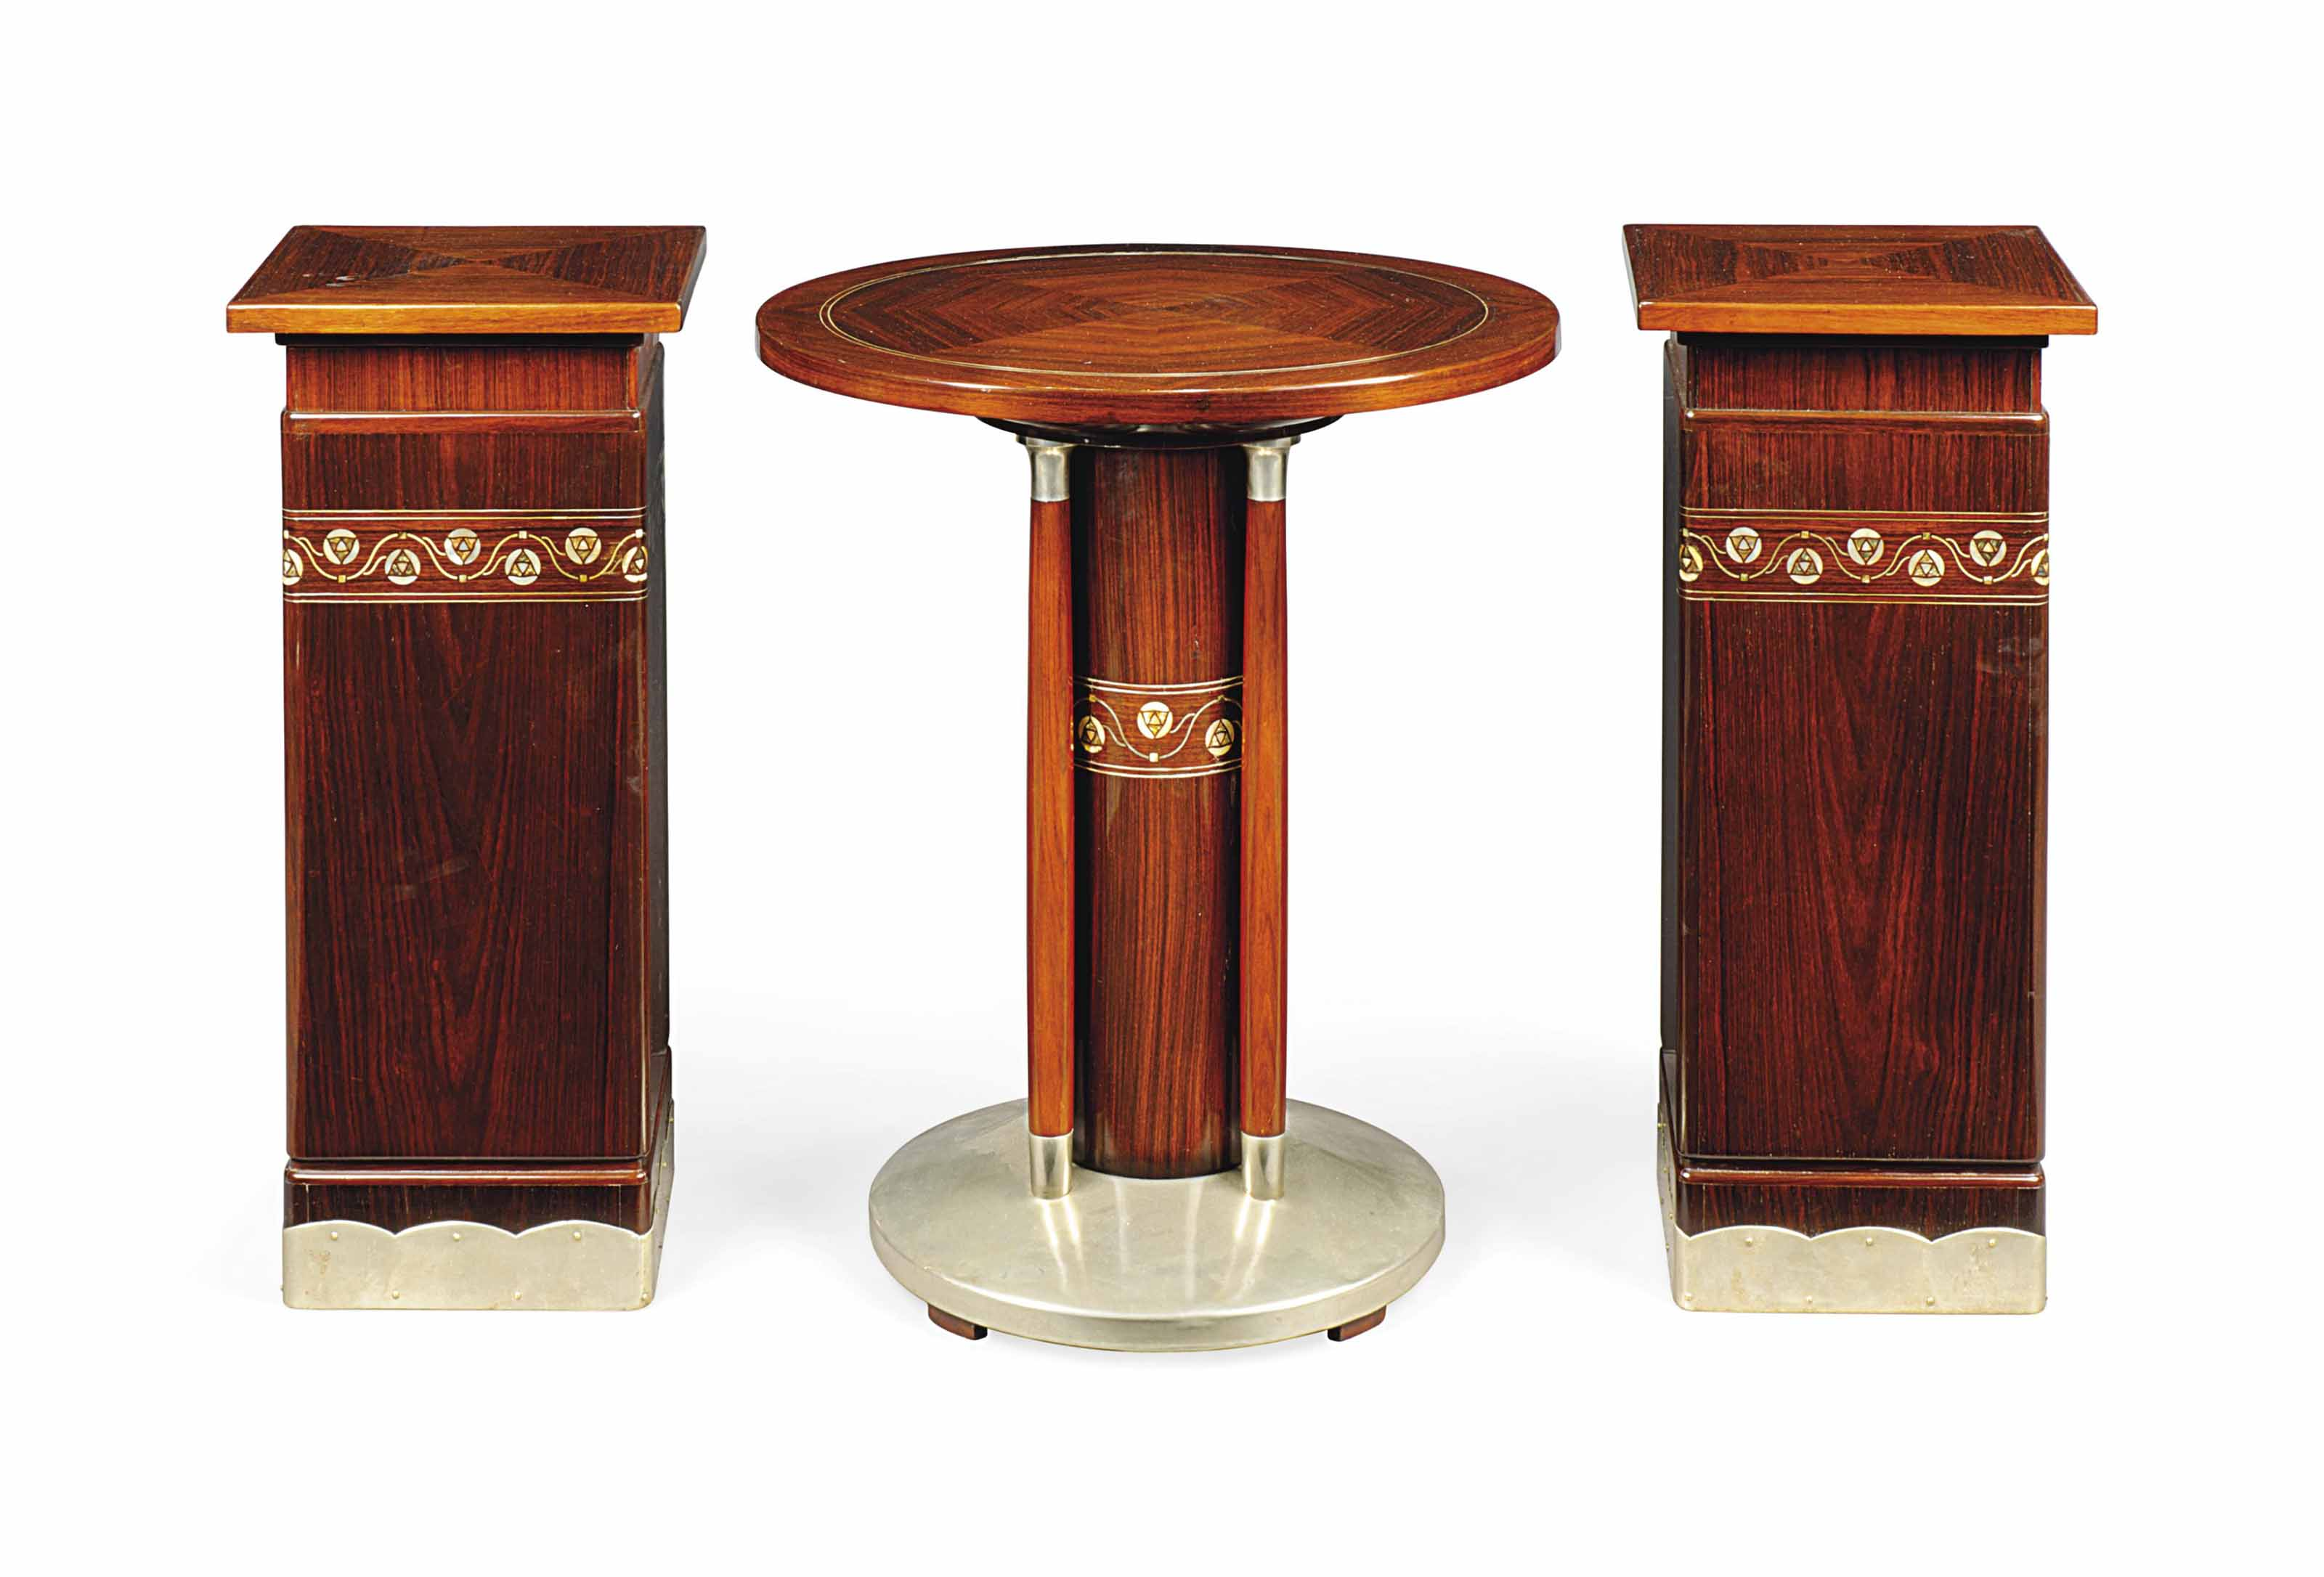 A MACASSAR AND ABALONE-INLAID OCCASIONAL TABLE AND A PAIR OF MATCHING PEDESTALS IN THE STYLE OF JOSEF M. OLBRICH (1867-1908)